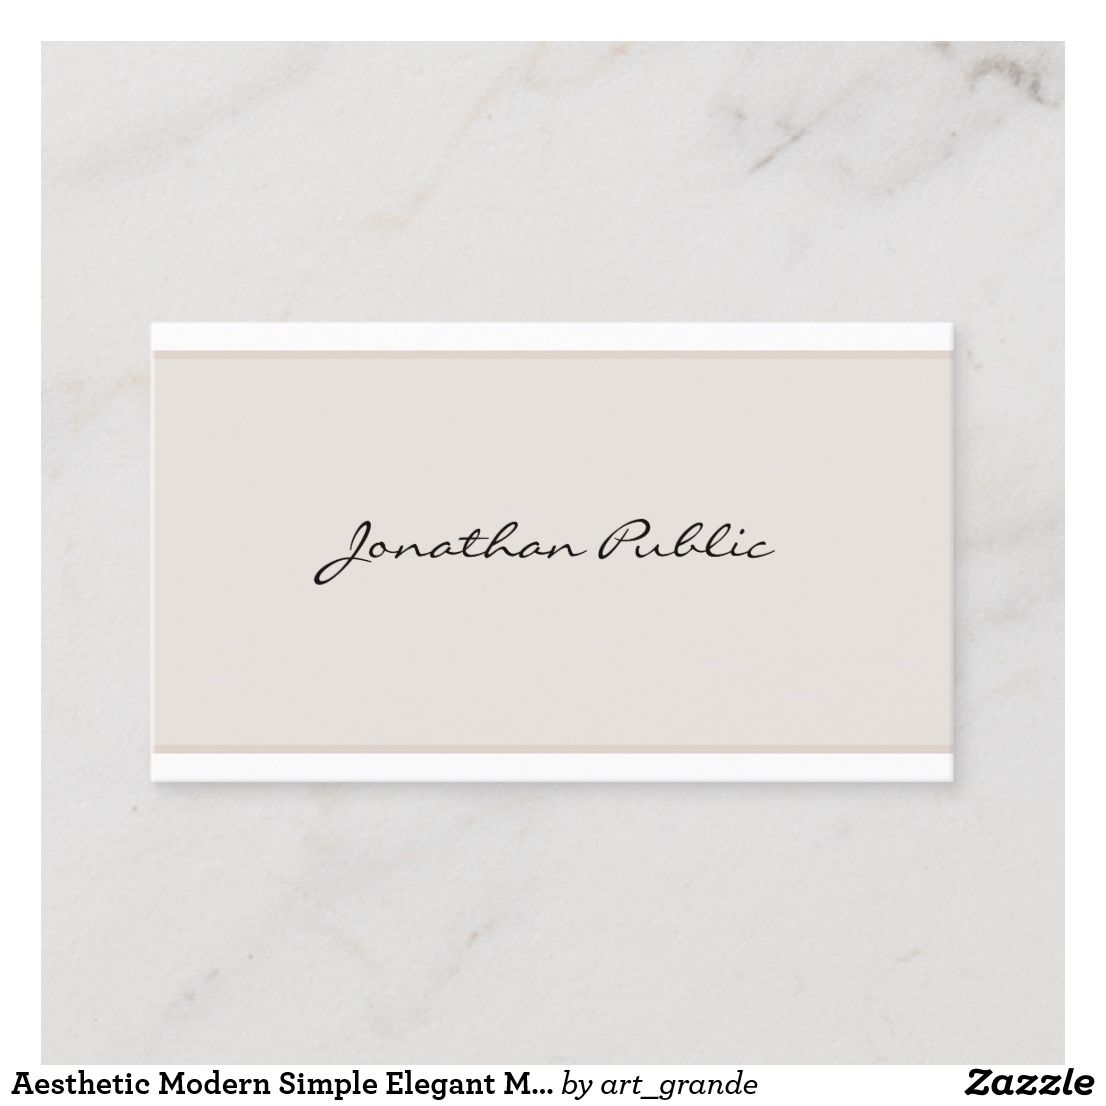 Aesthetic Modern Simple Elegant Minimalistic Plain Business Card Zazzle Com Visiting Cards Printing Double Sided Simple